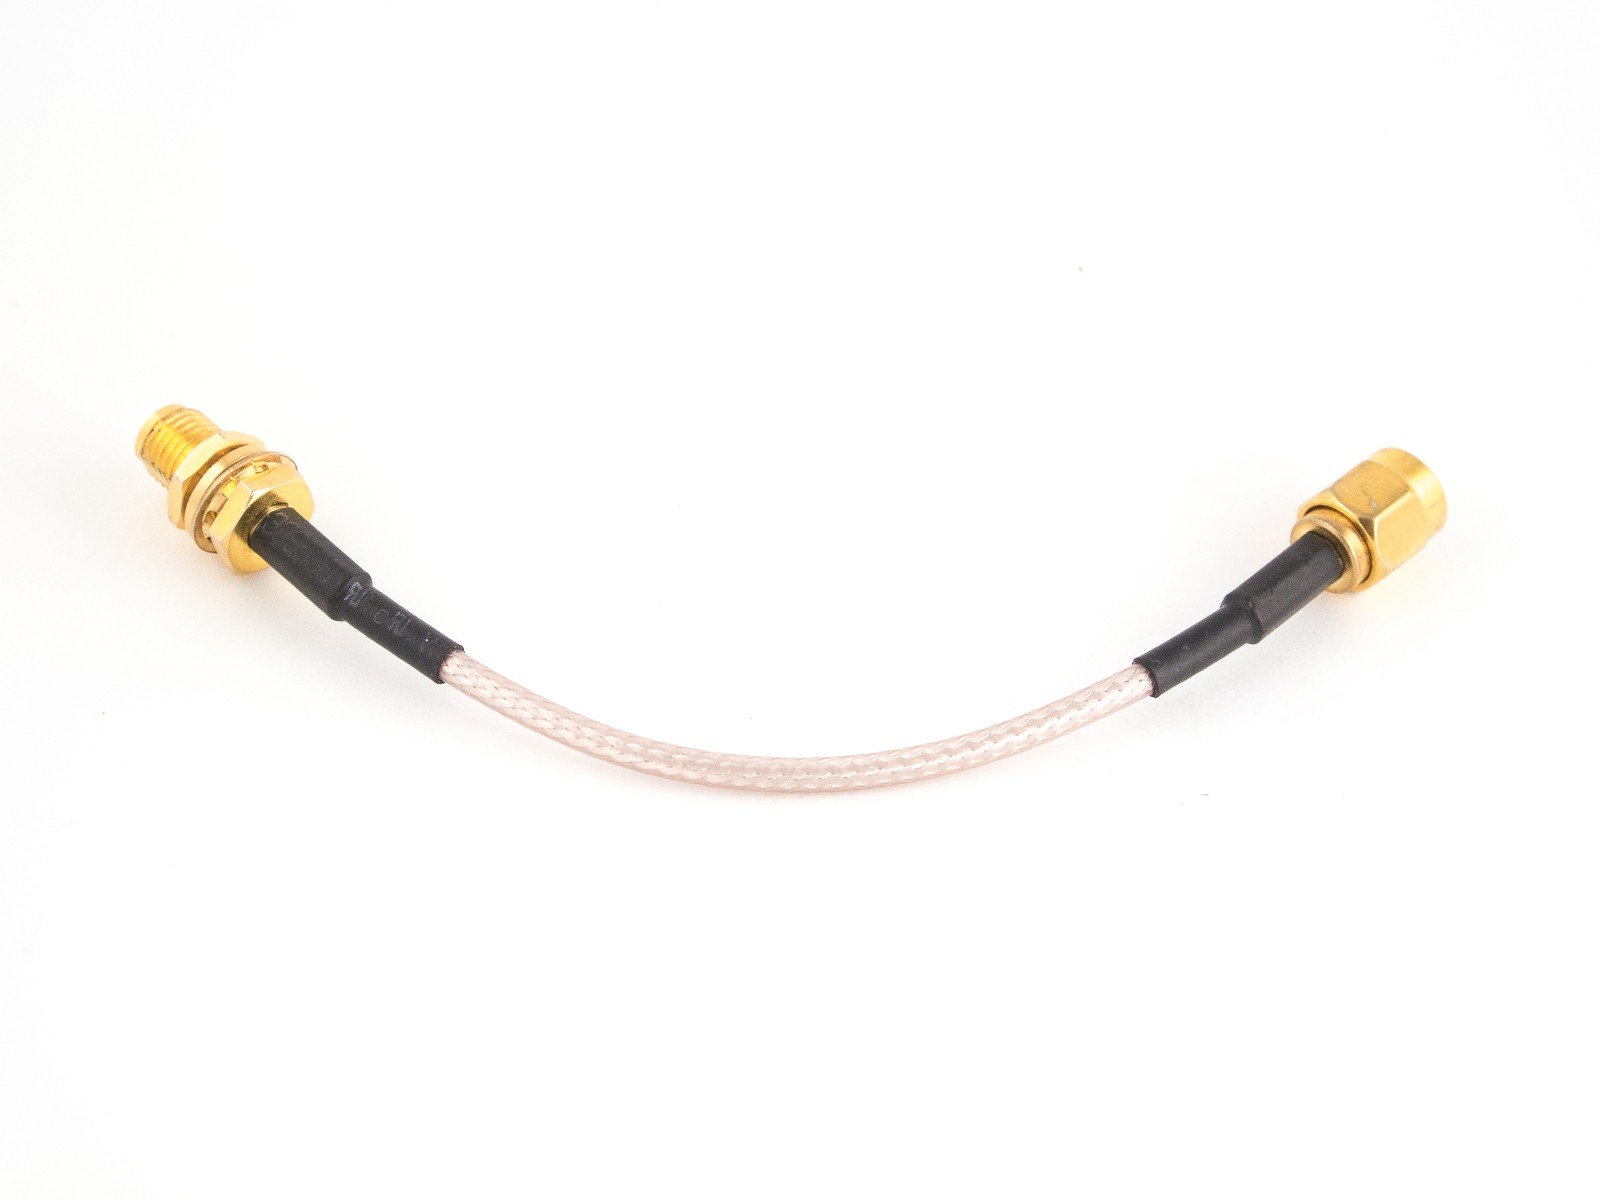 RP-SMA pigtail straight 10cm